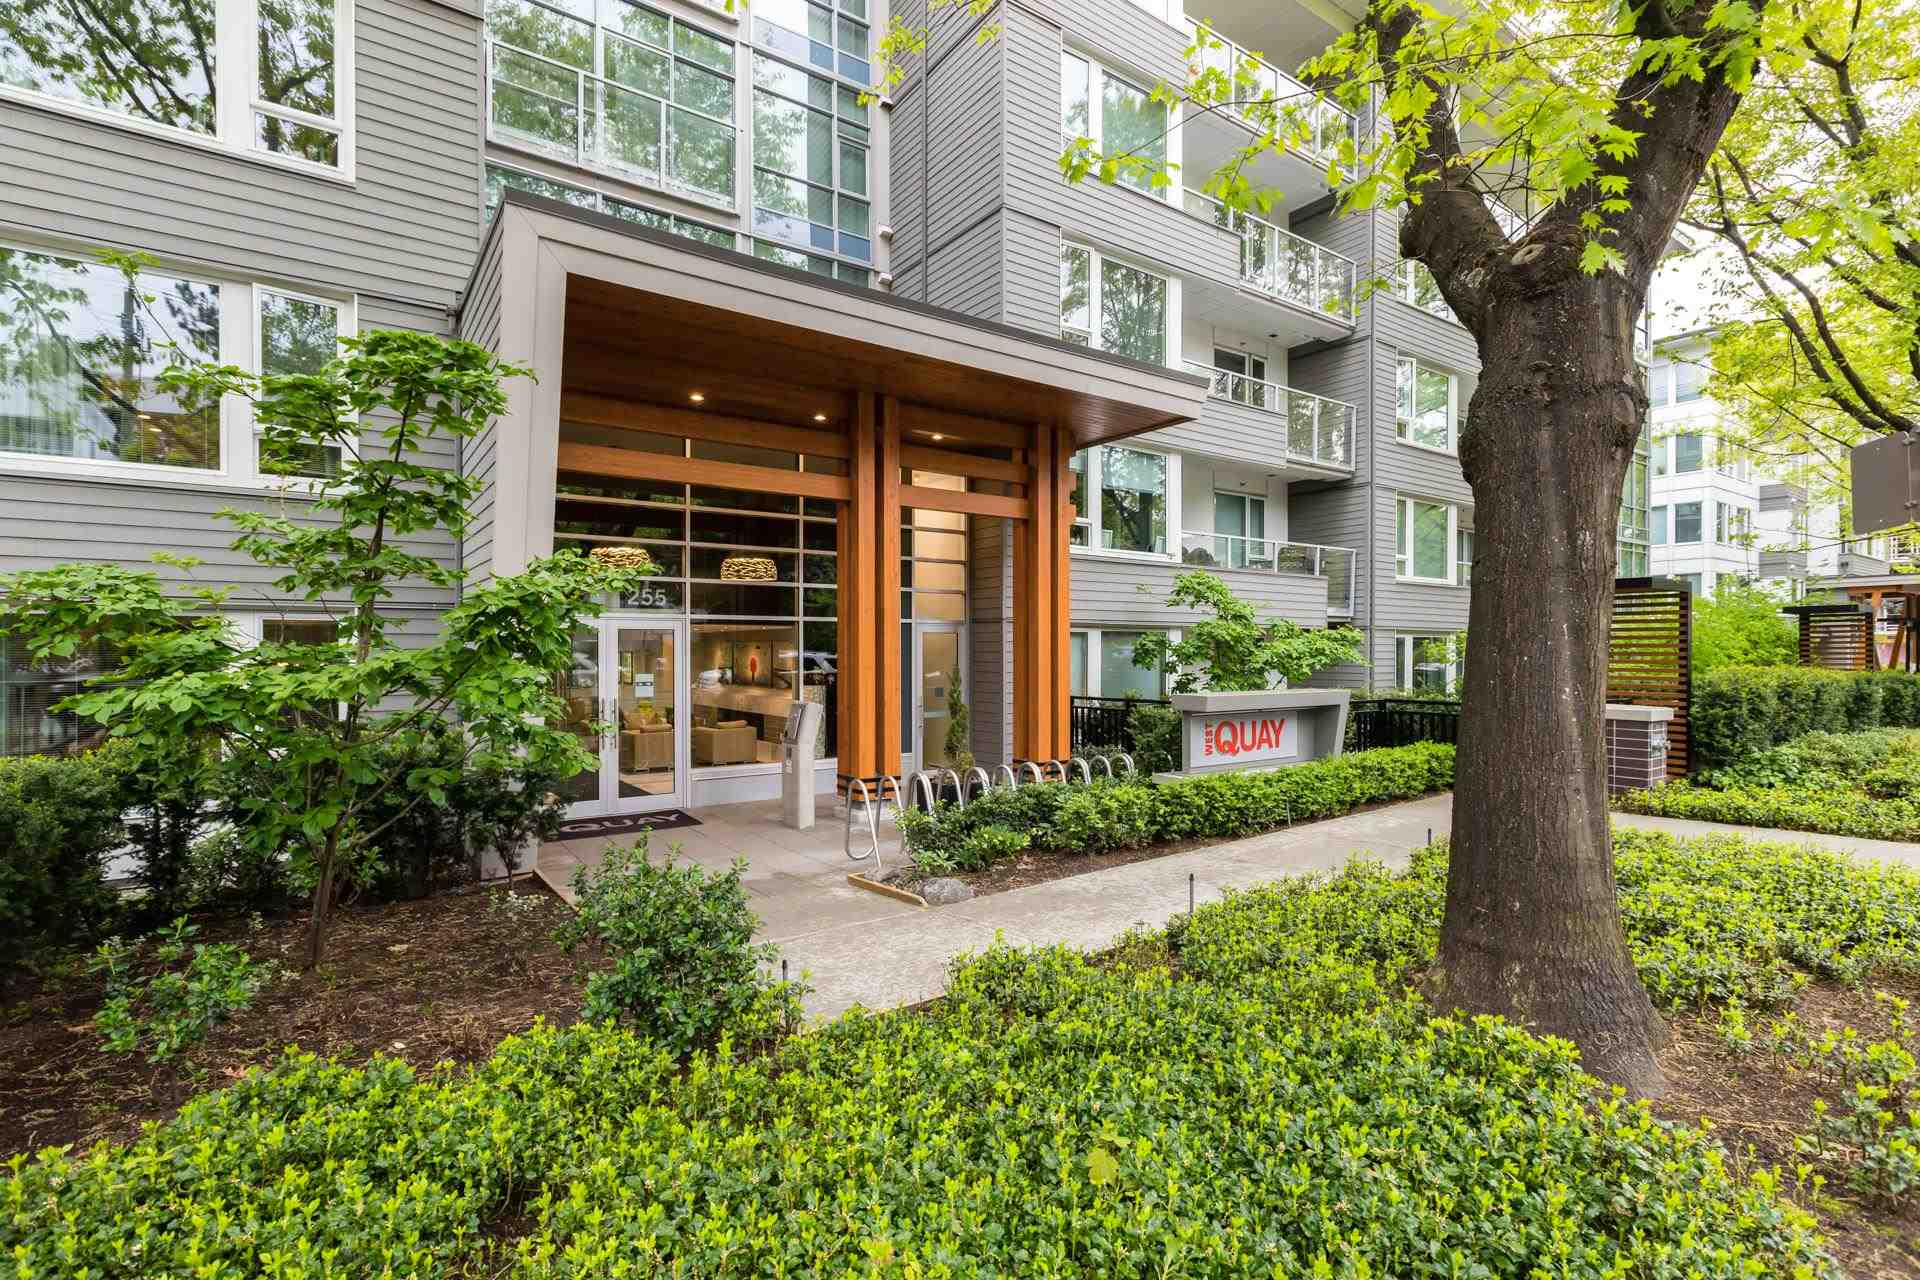 207 255 W 1ST STREET - Lower Lonsdale Apartment/Condo for sale, 2 Bedrooms (R2603882) - #33